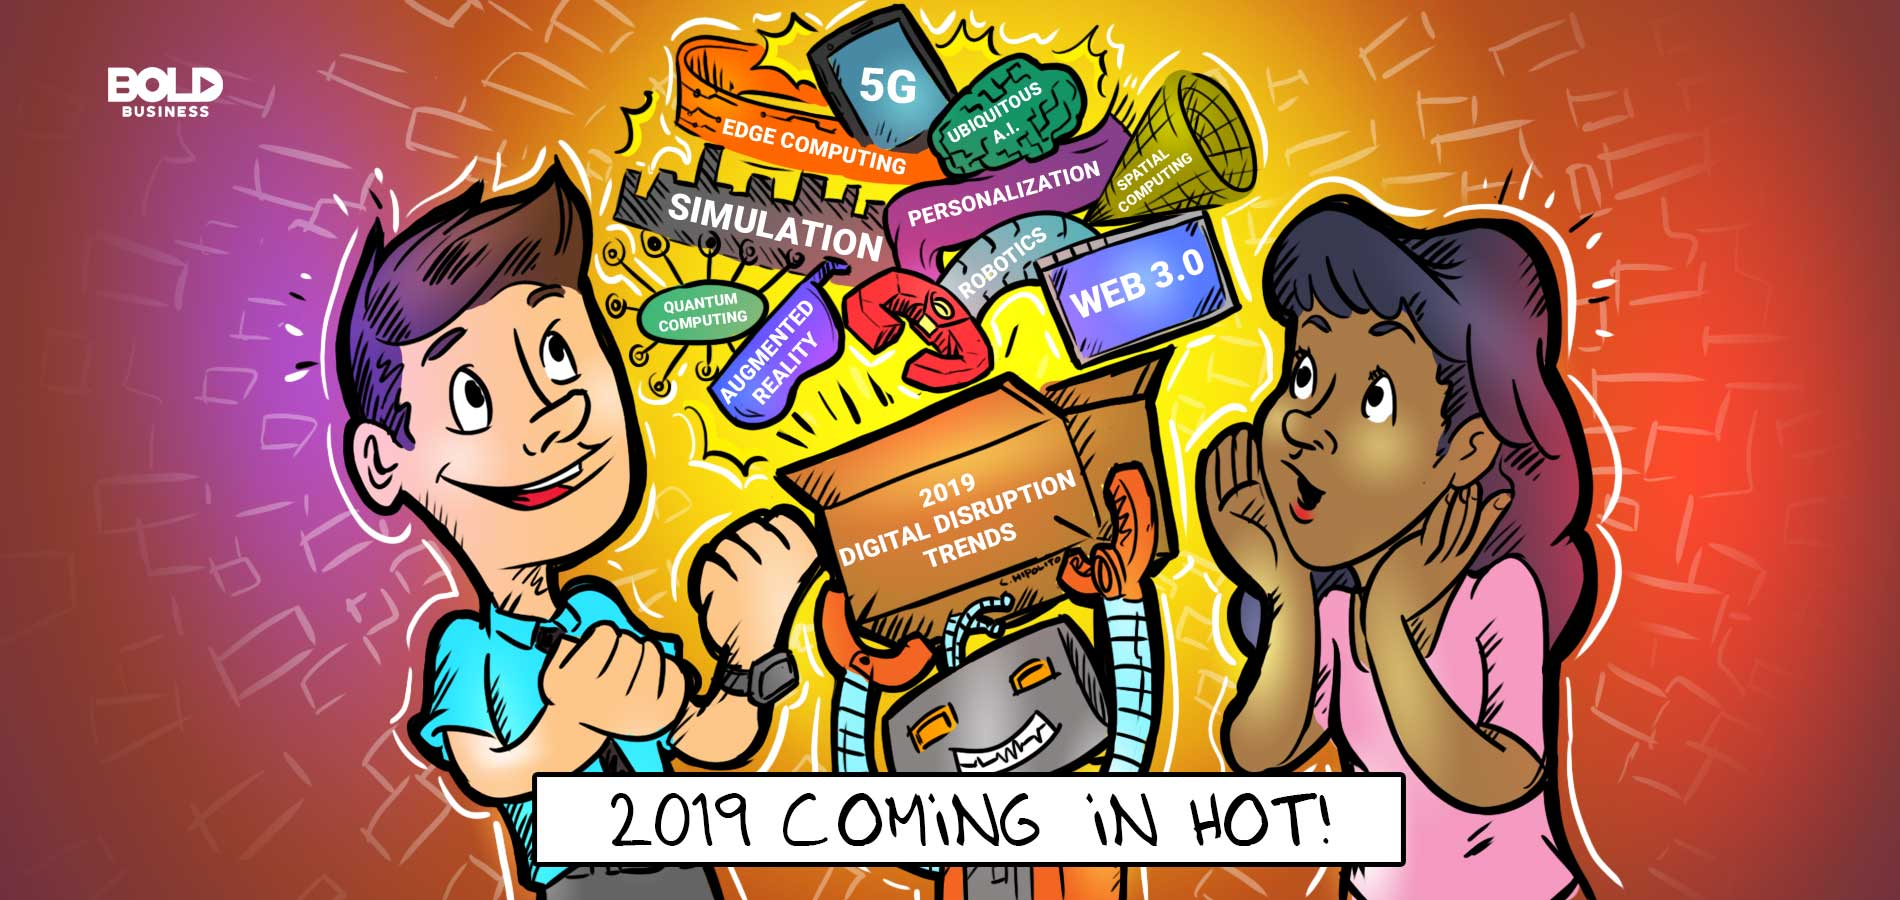 a cartoon of top 2019 business trends in different industries